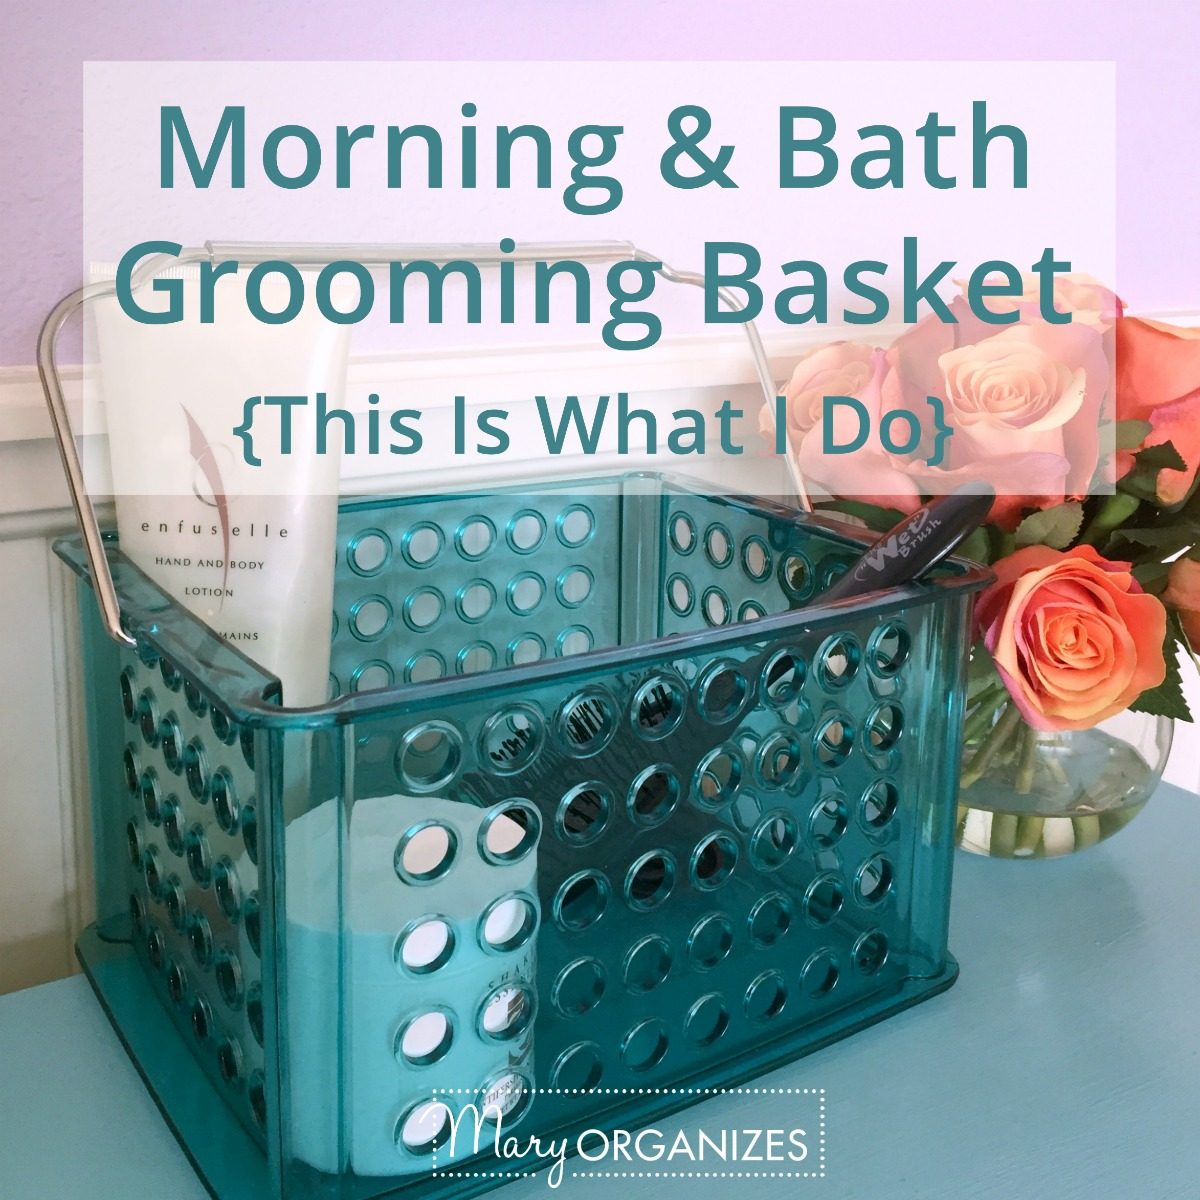 Morning and Bath Grooming Baskets TIWID -s